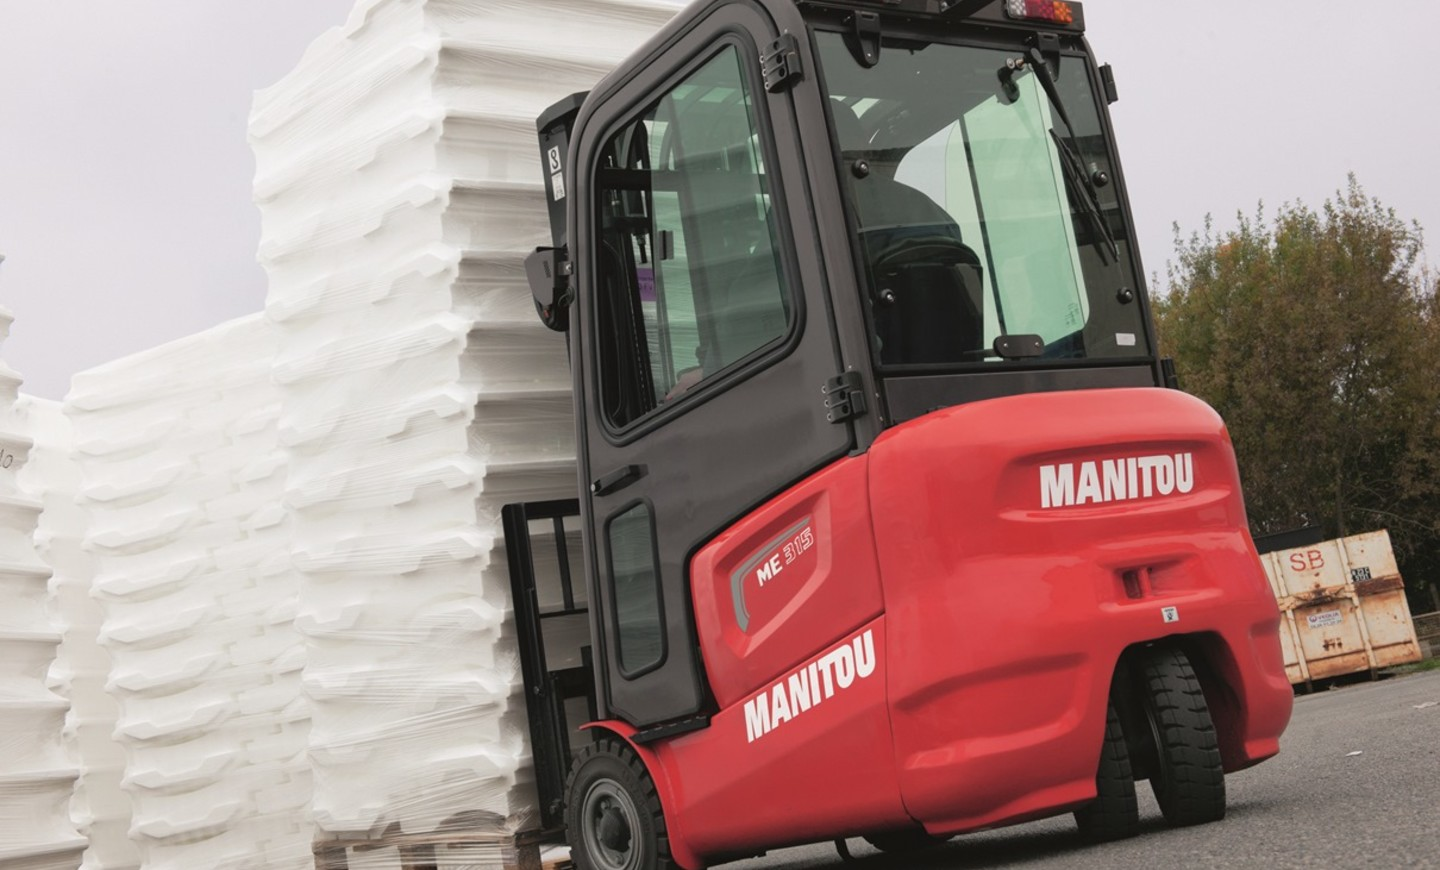 Manitou - Telehandlers, forklifts, aerial work platforms and